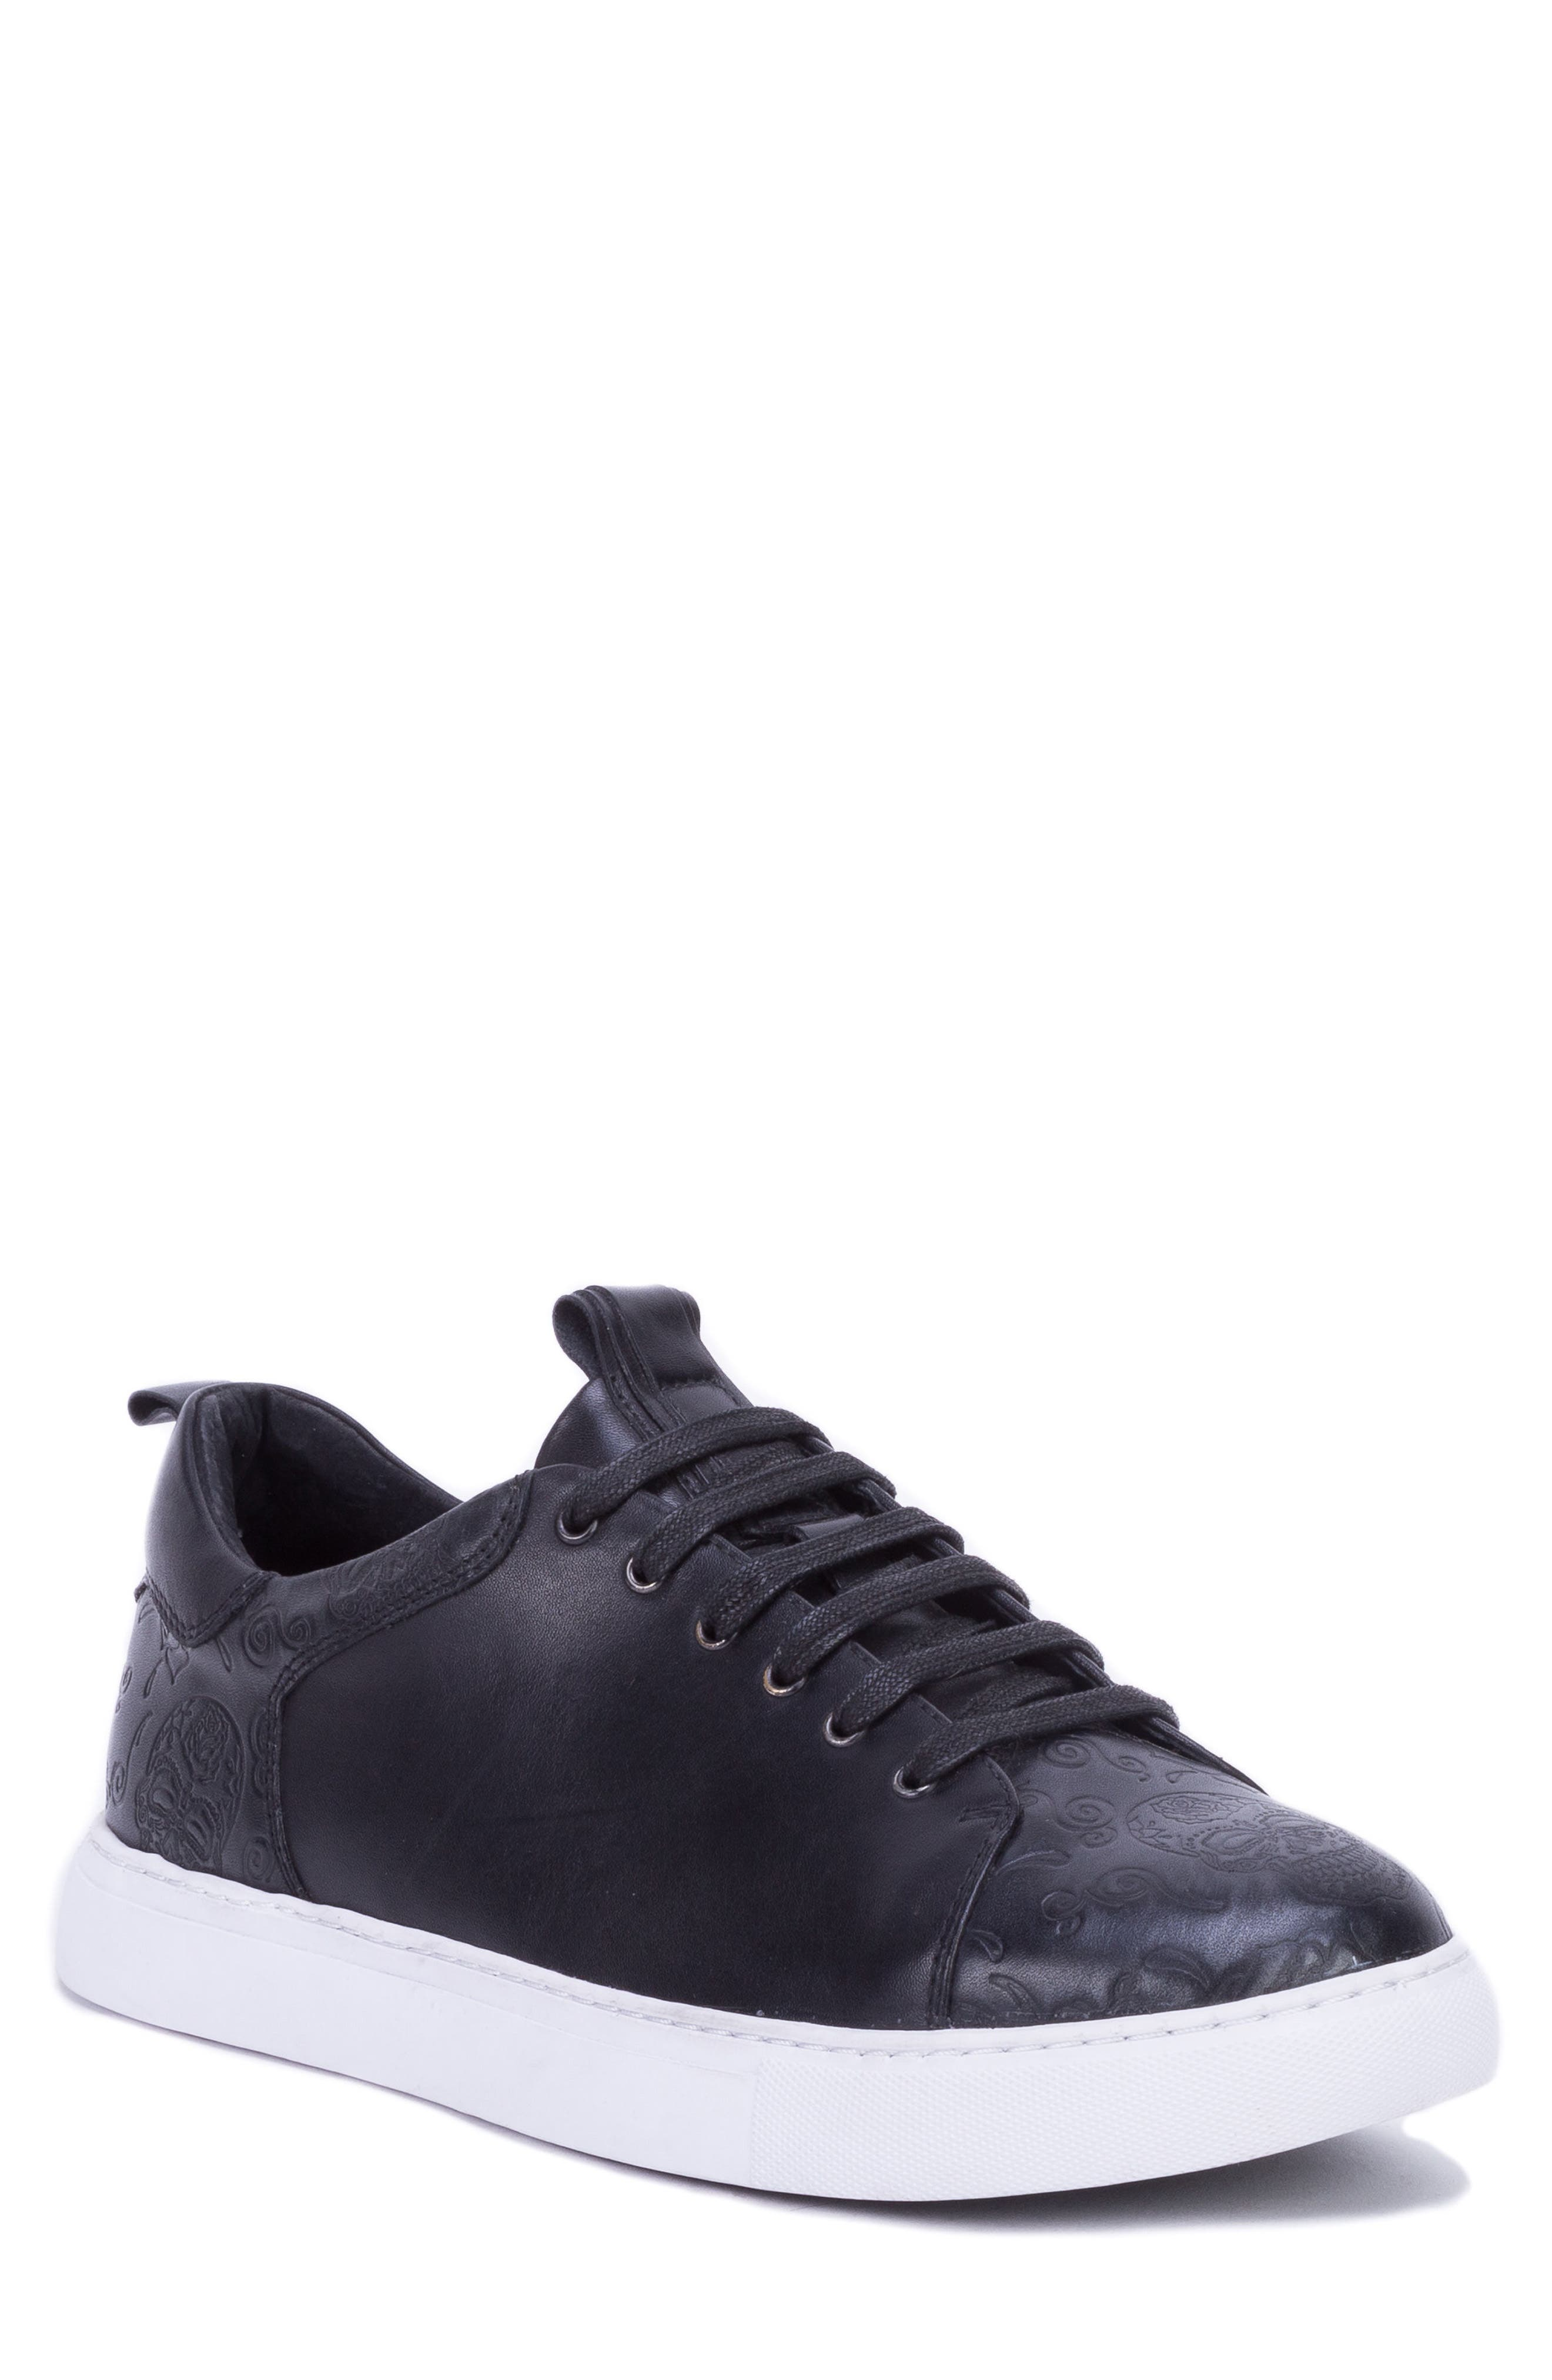 Sanderson Embossed Sneaker,                             Main thumbnail 1, color,                             BLACK LEATHER